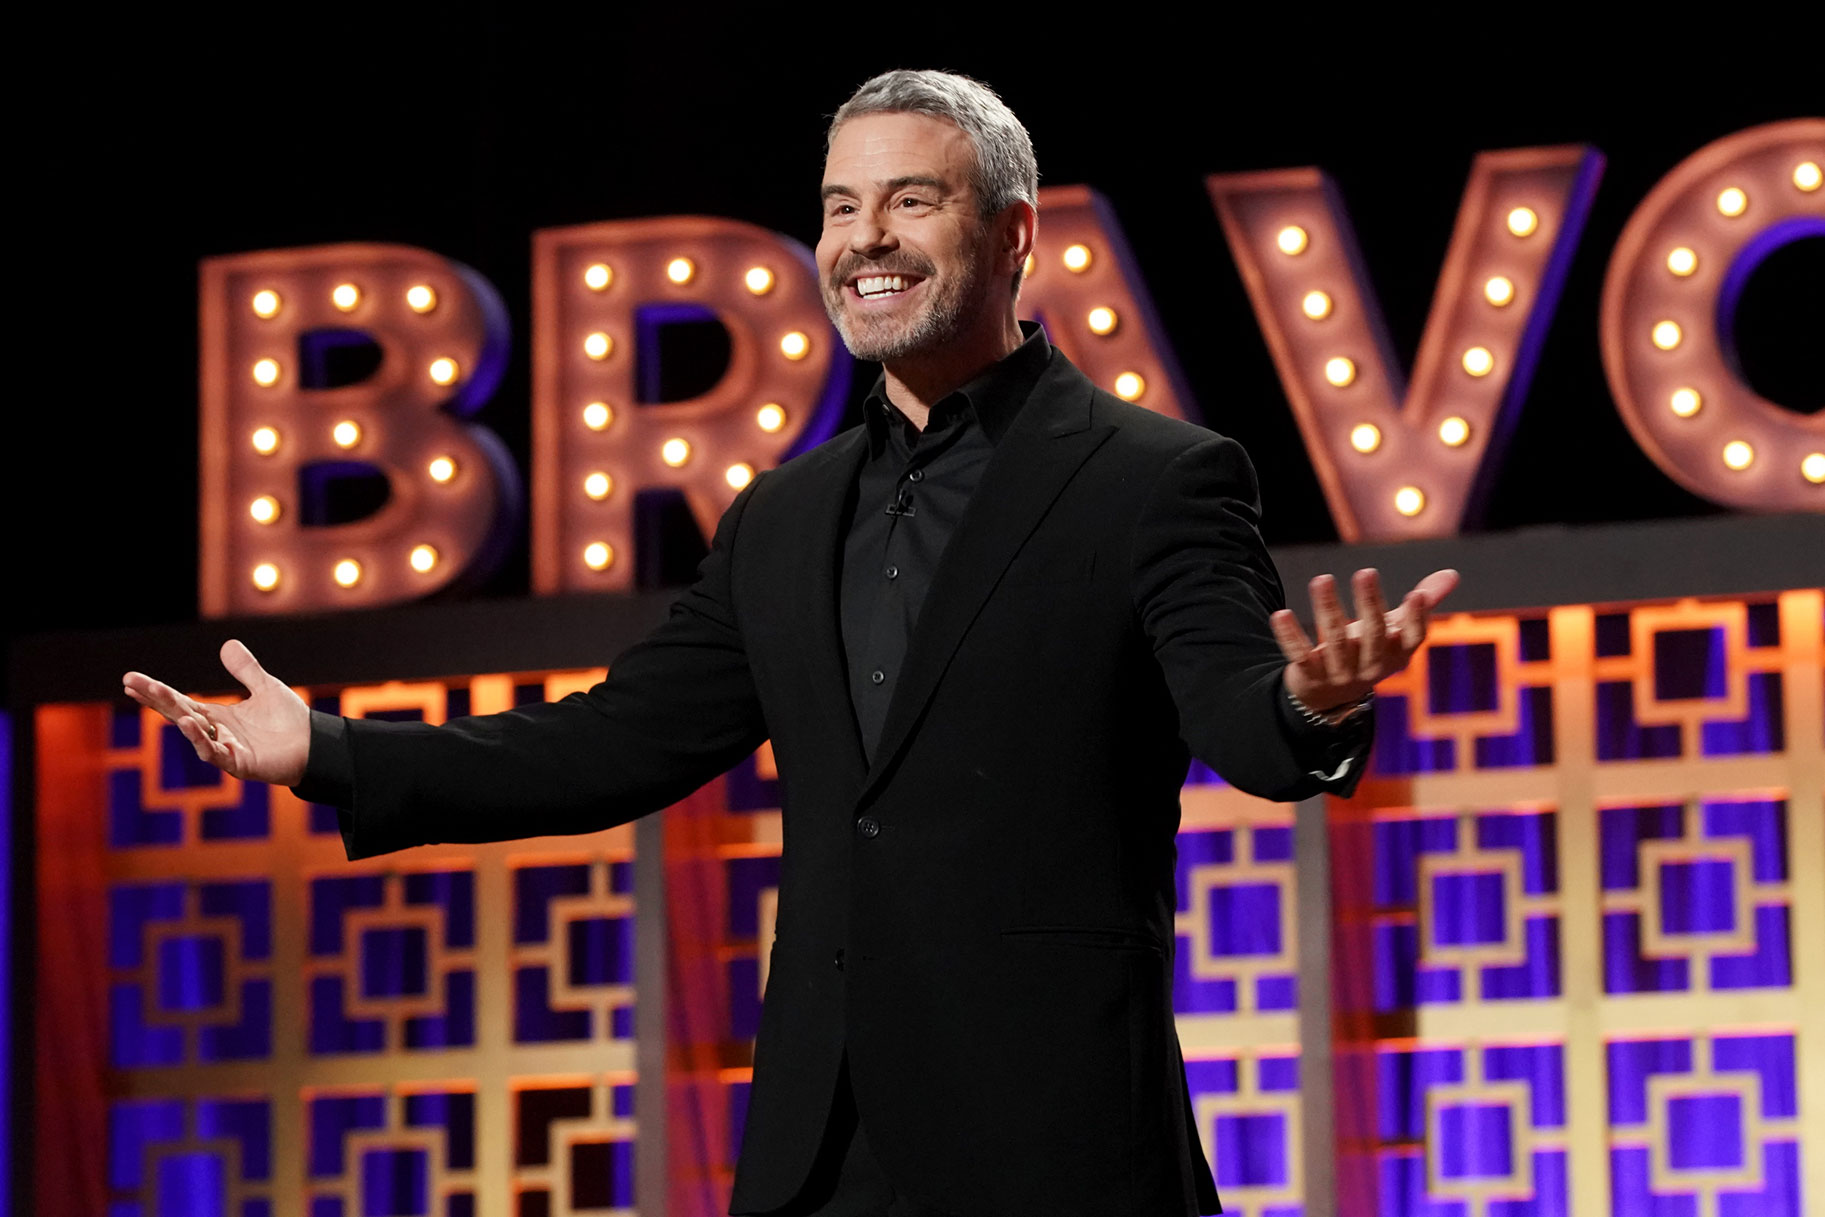 Andy Cohen Wwhl Bravcon Makeout